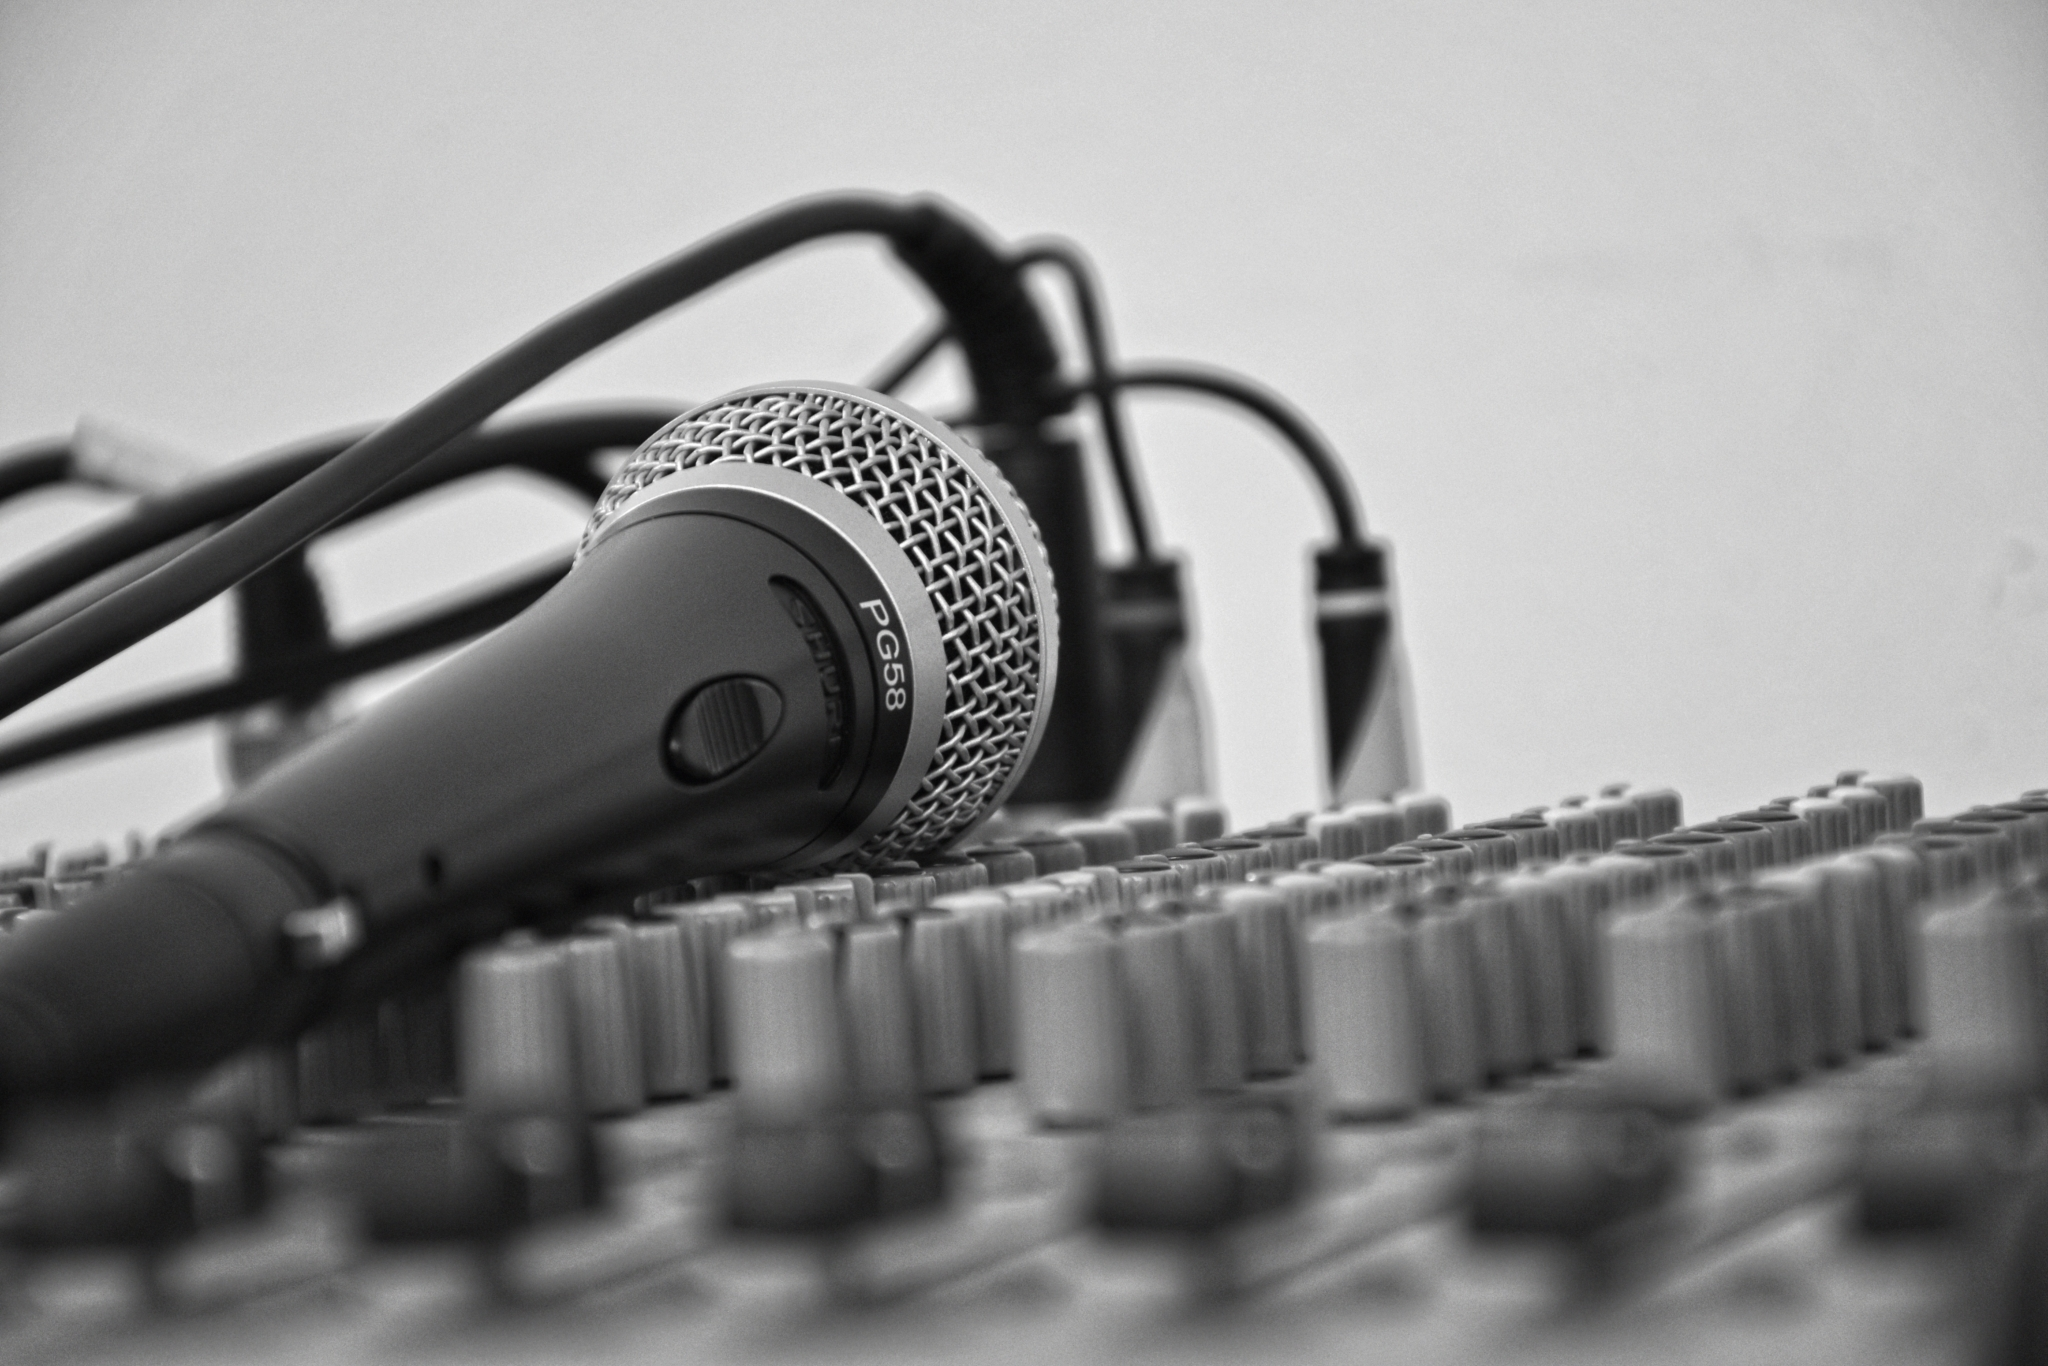 Mic and other music tech